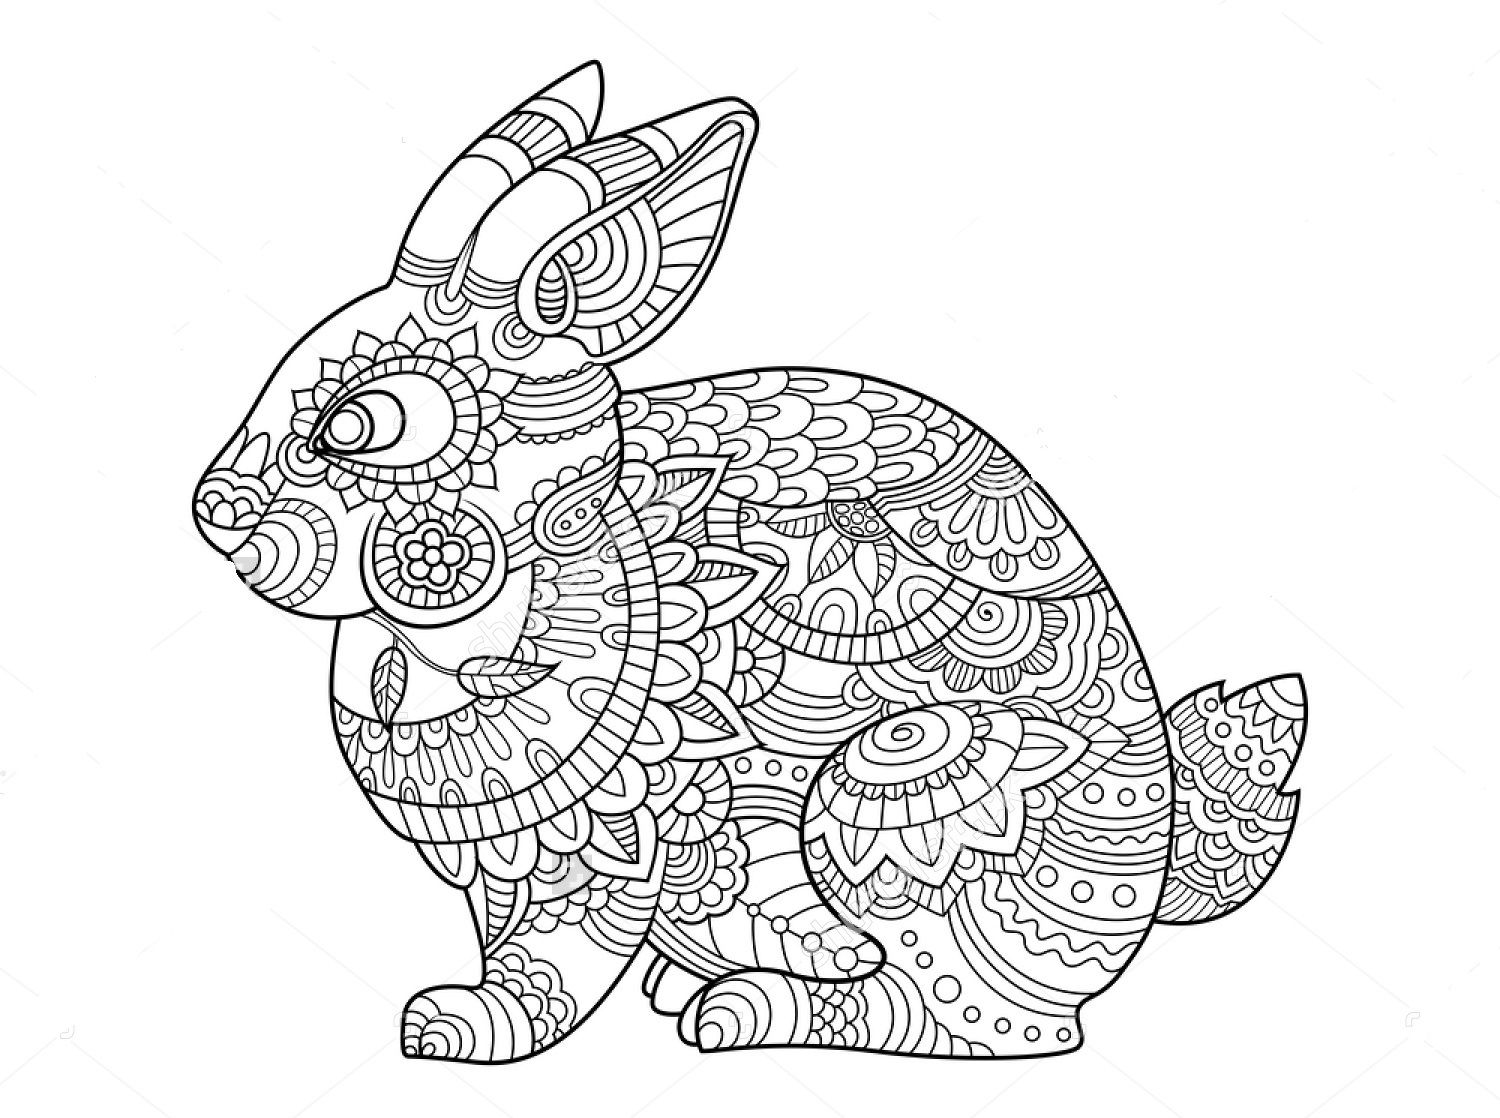 Rabbit Zentangle Coloring Page Bunny Coloring Pages Mandala Coloring Pages Animal Coloring Pages